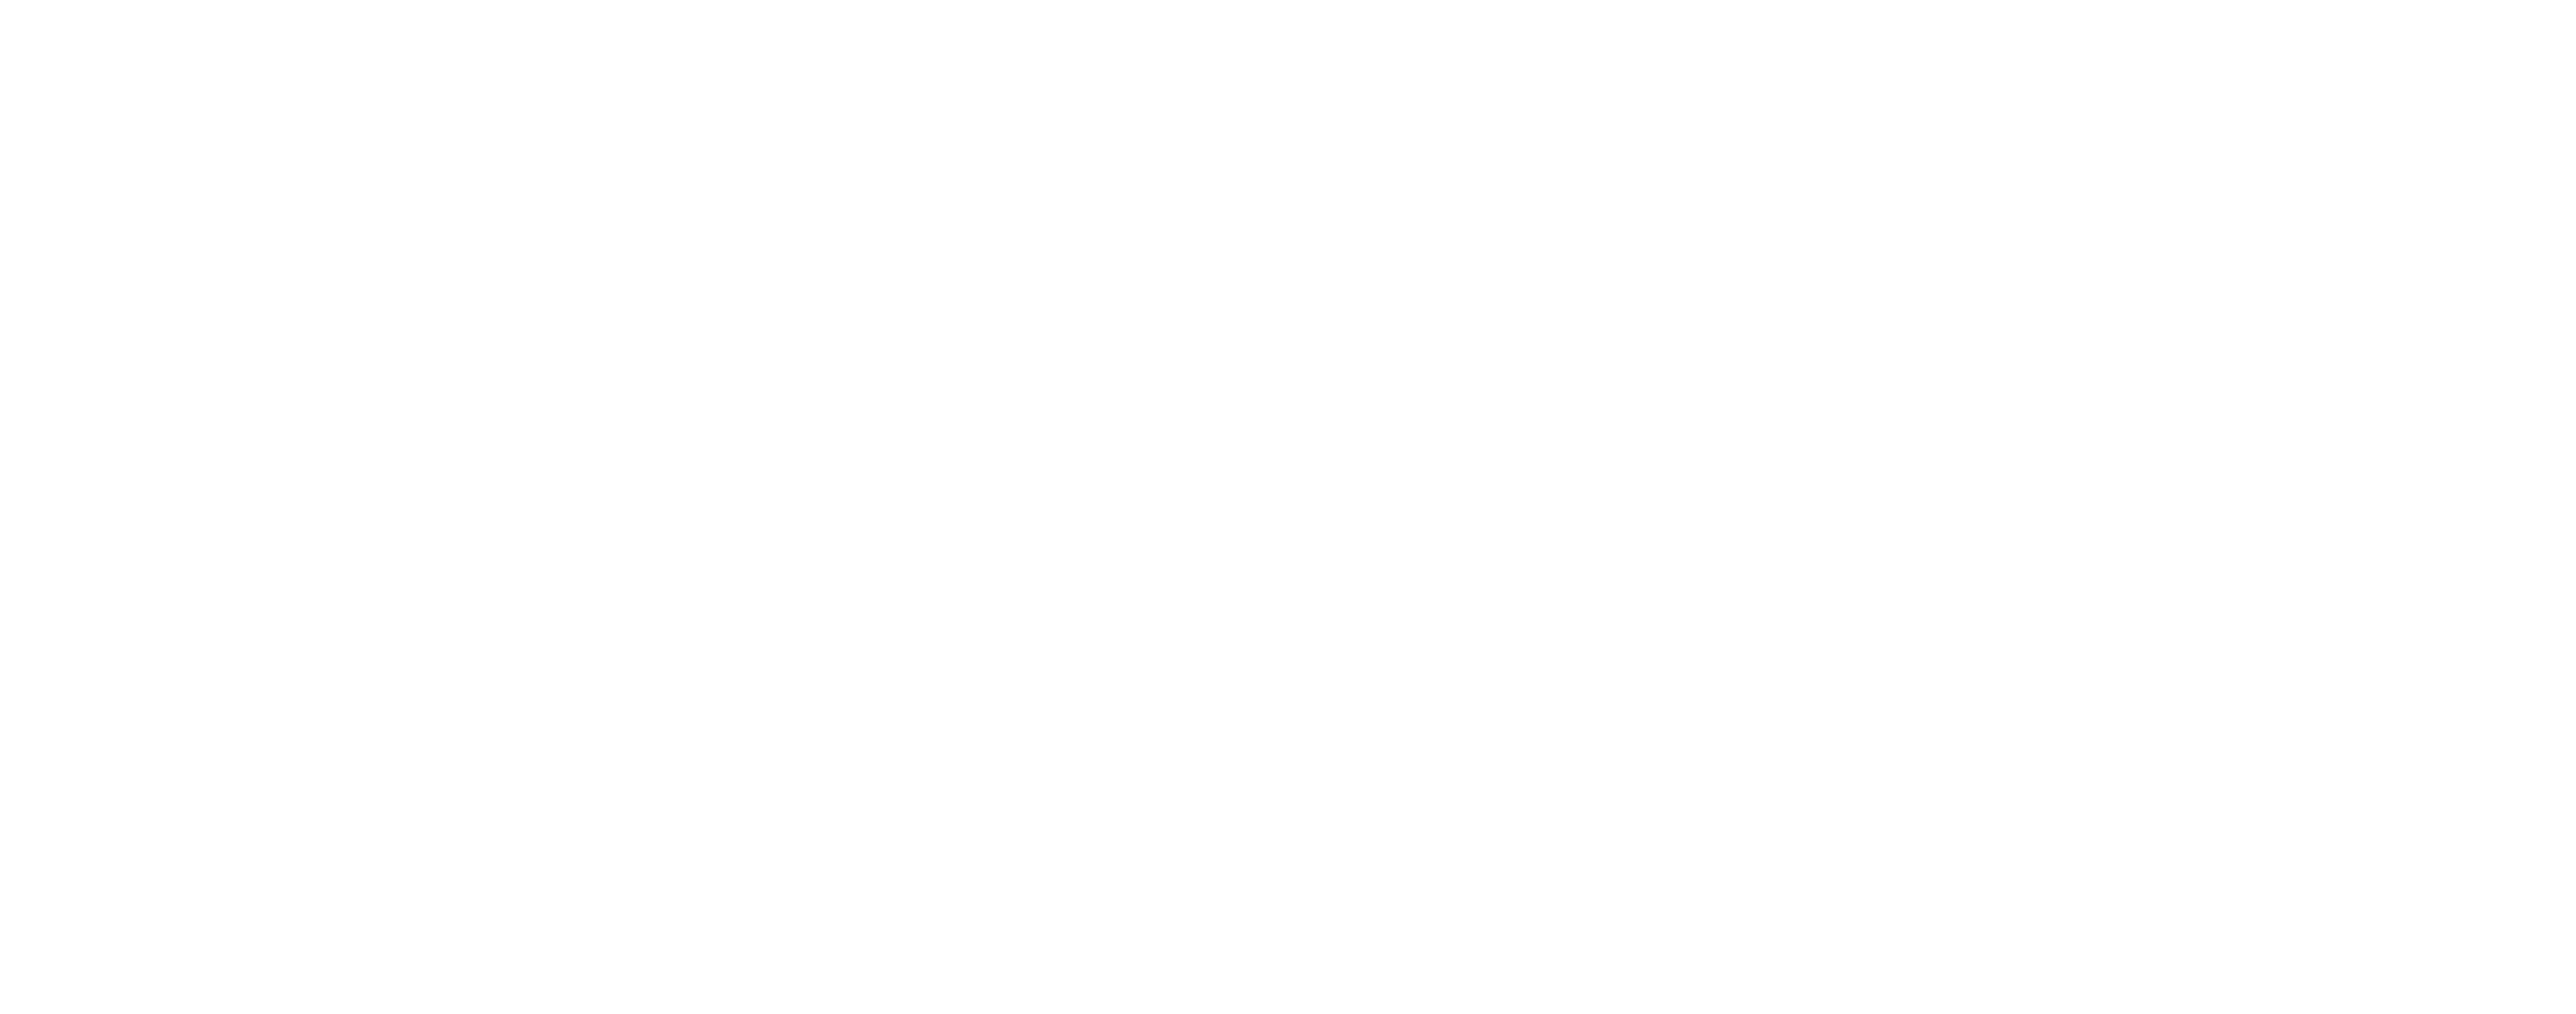 Lace clipart black and white. Pattern decorative png clip